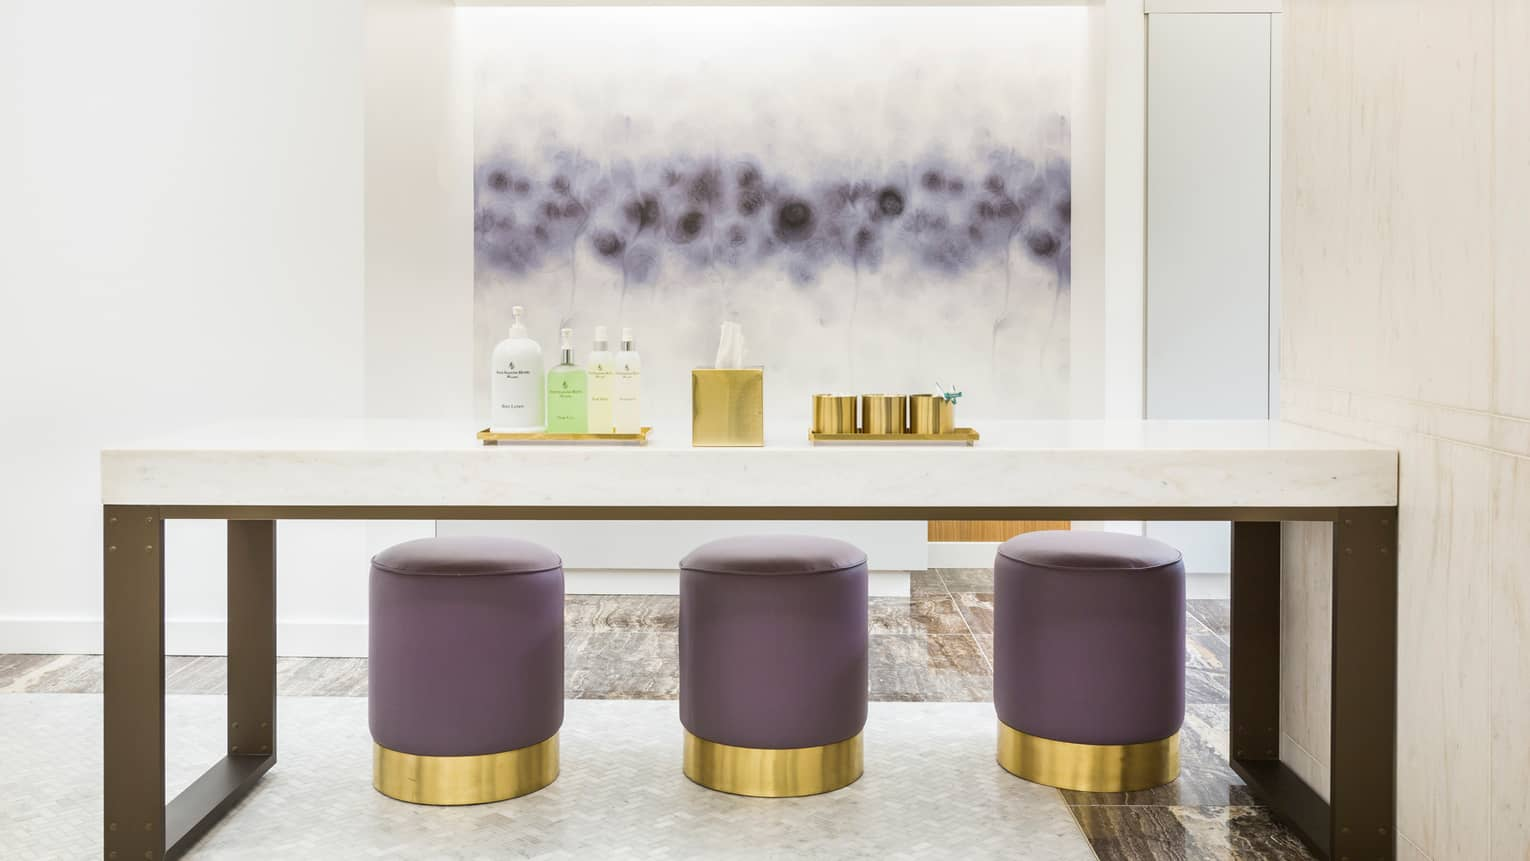 Marble treatment table in spa room, with lotions, gold tissue box and purple-and-gold stools